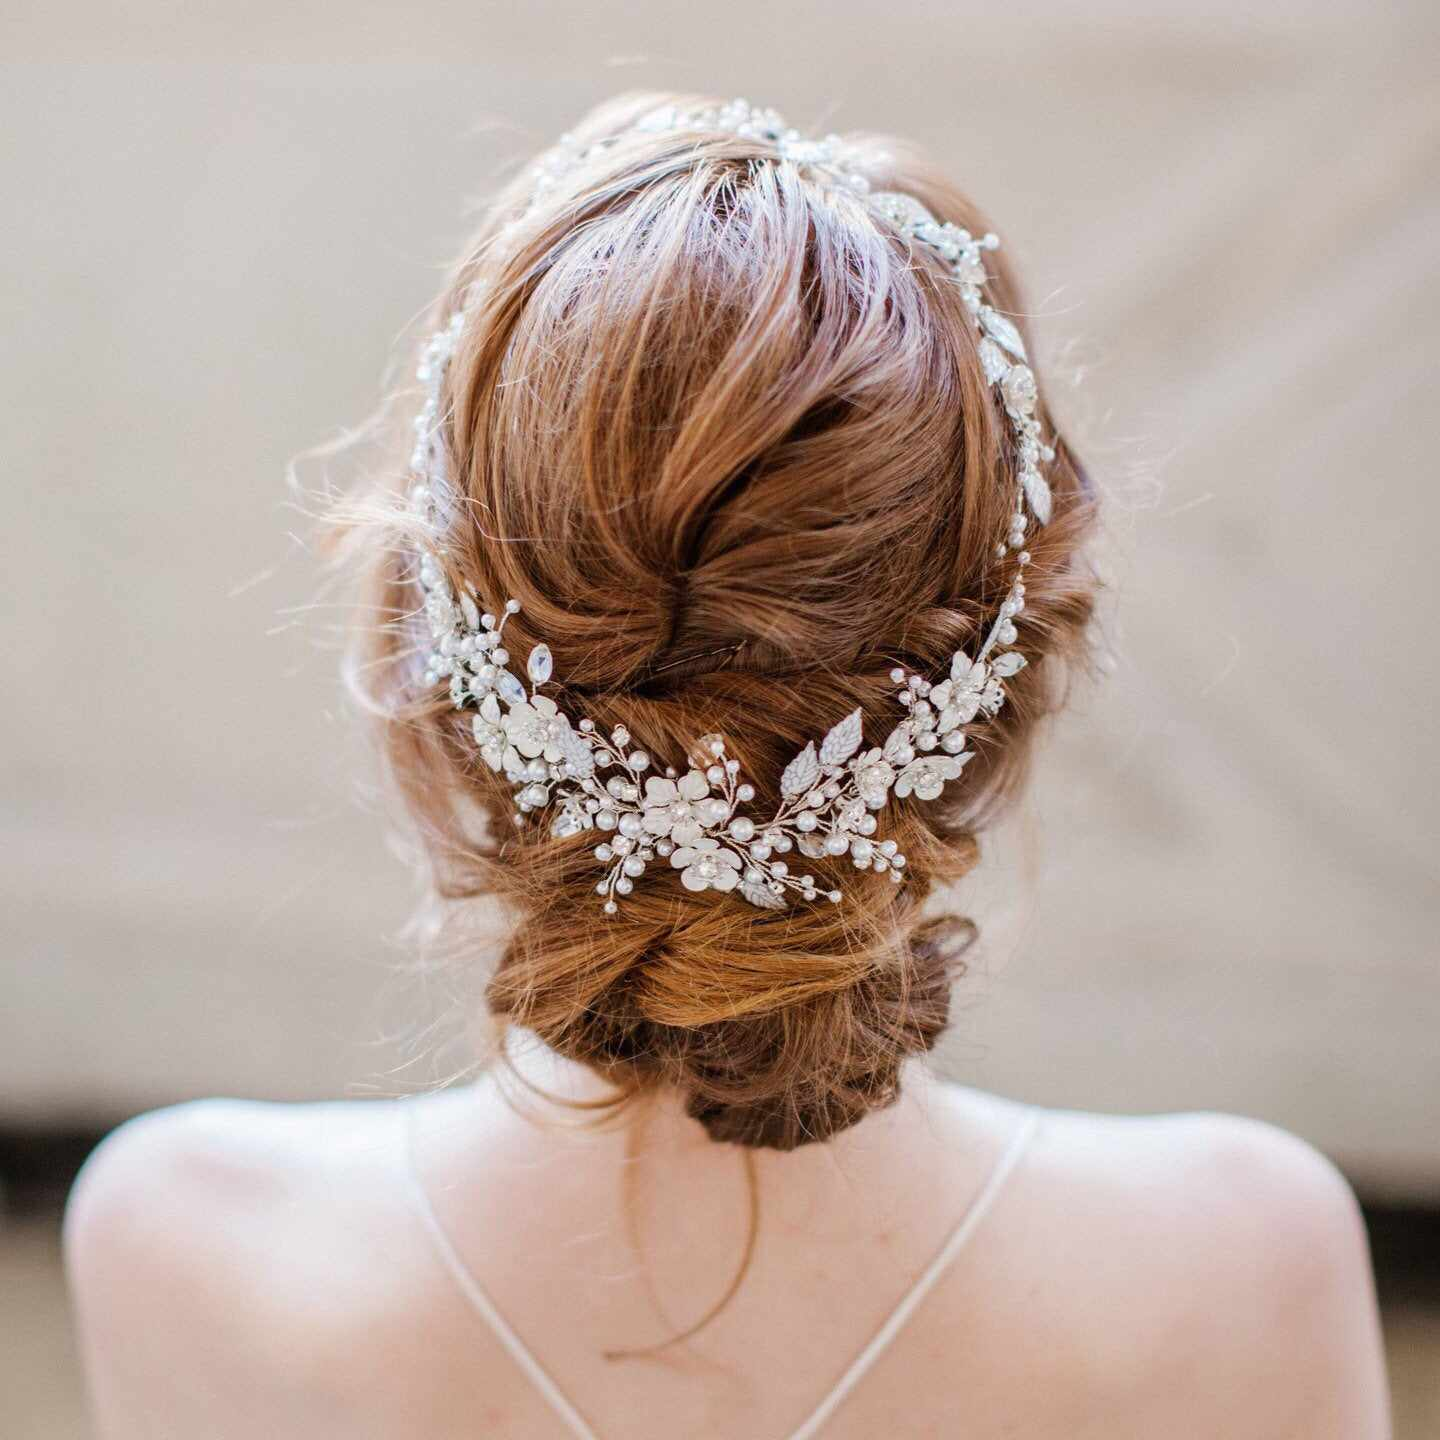 The 10 Best Bridal Hair Accessories of 10